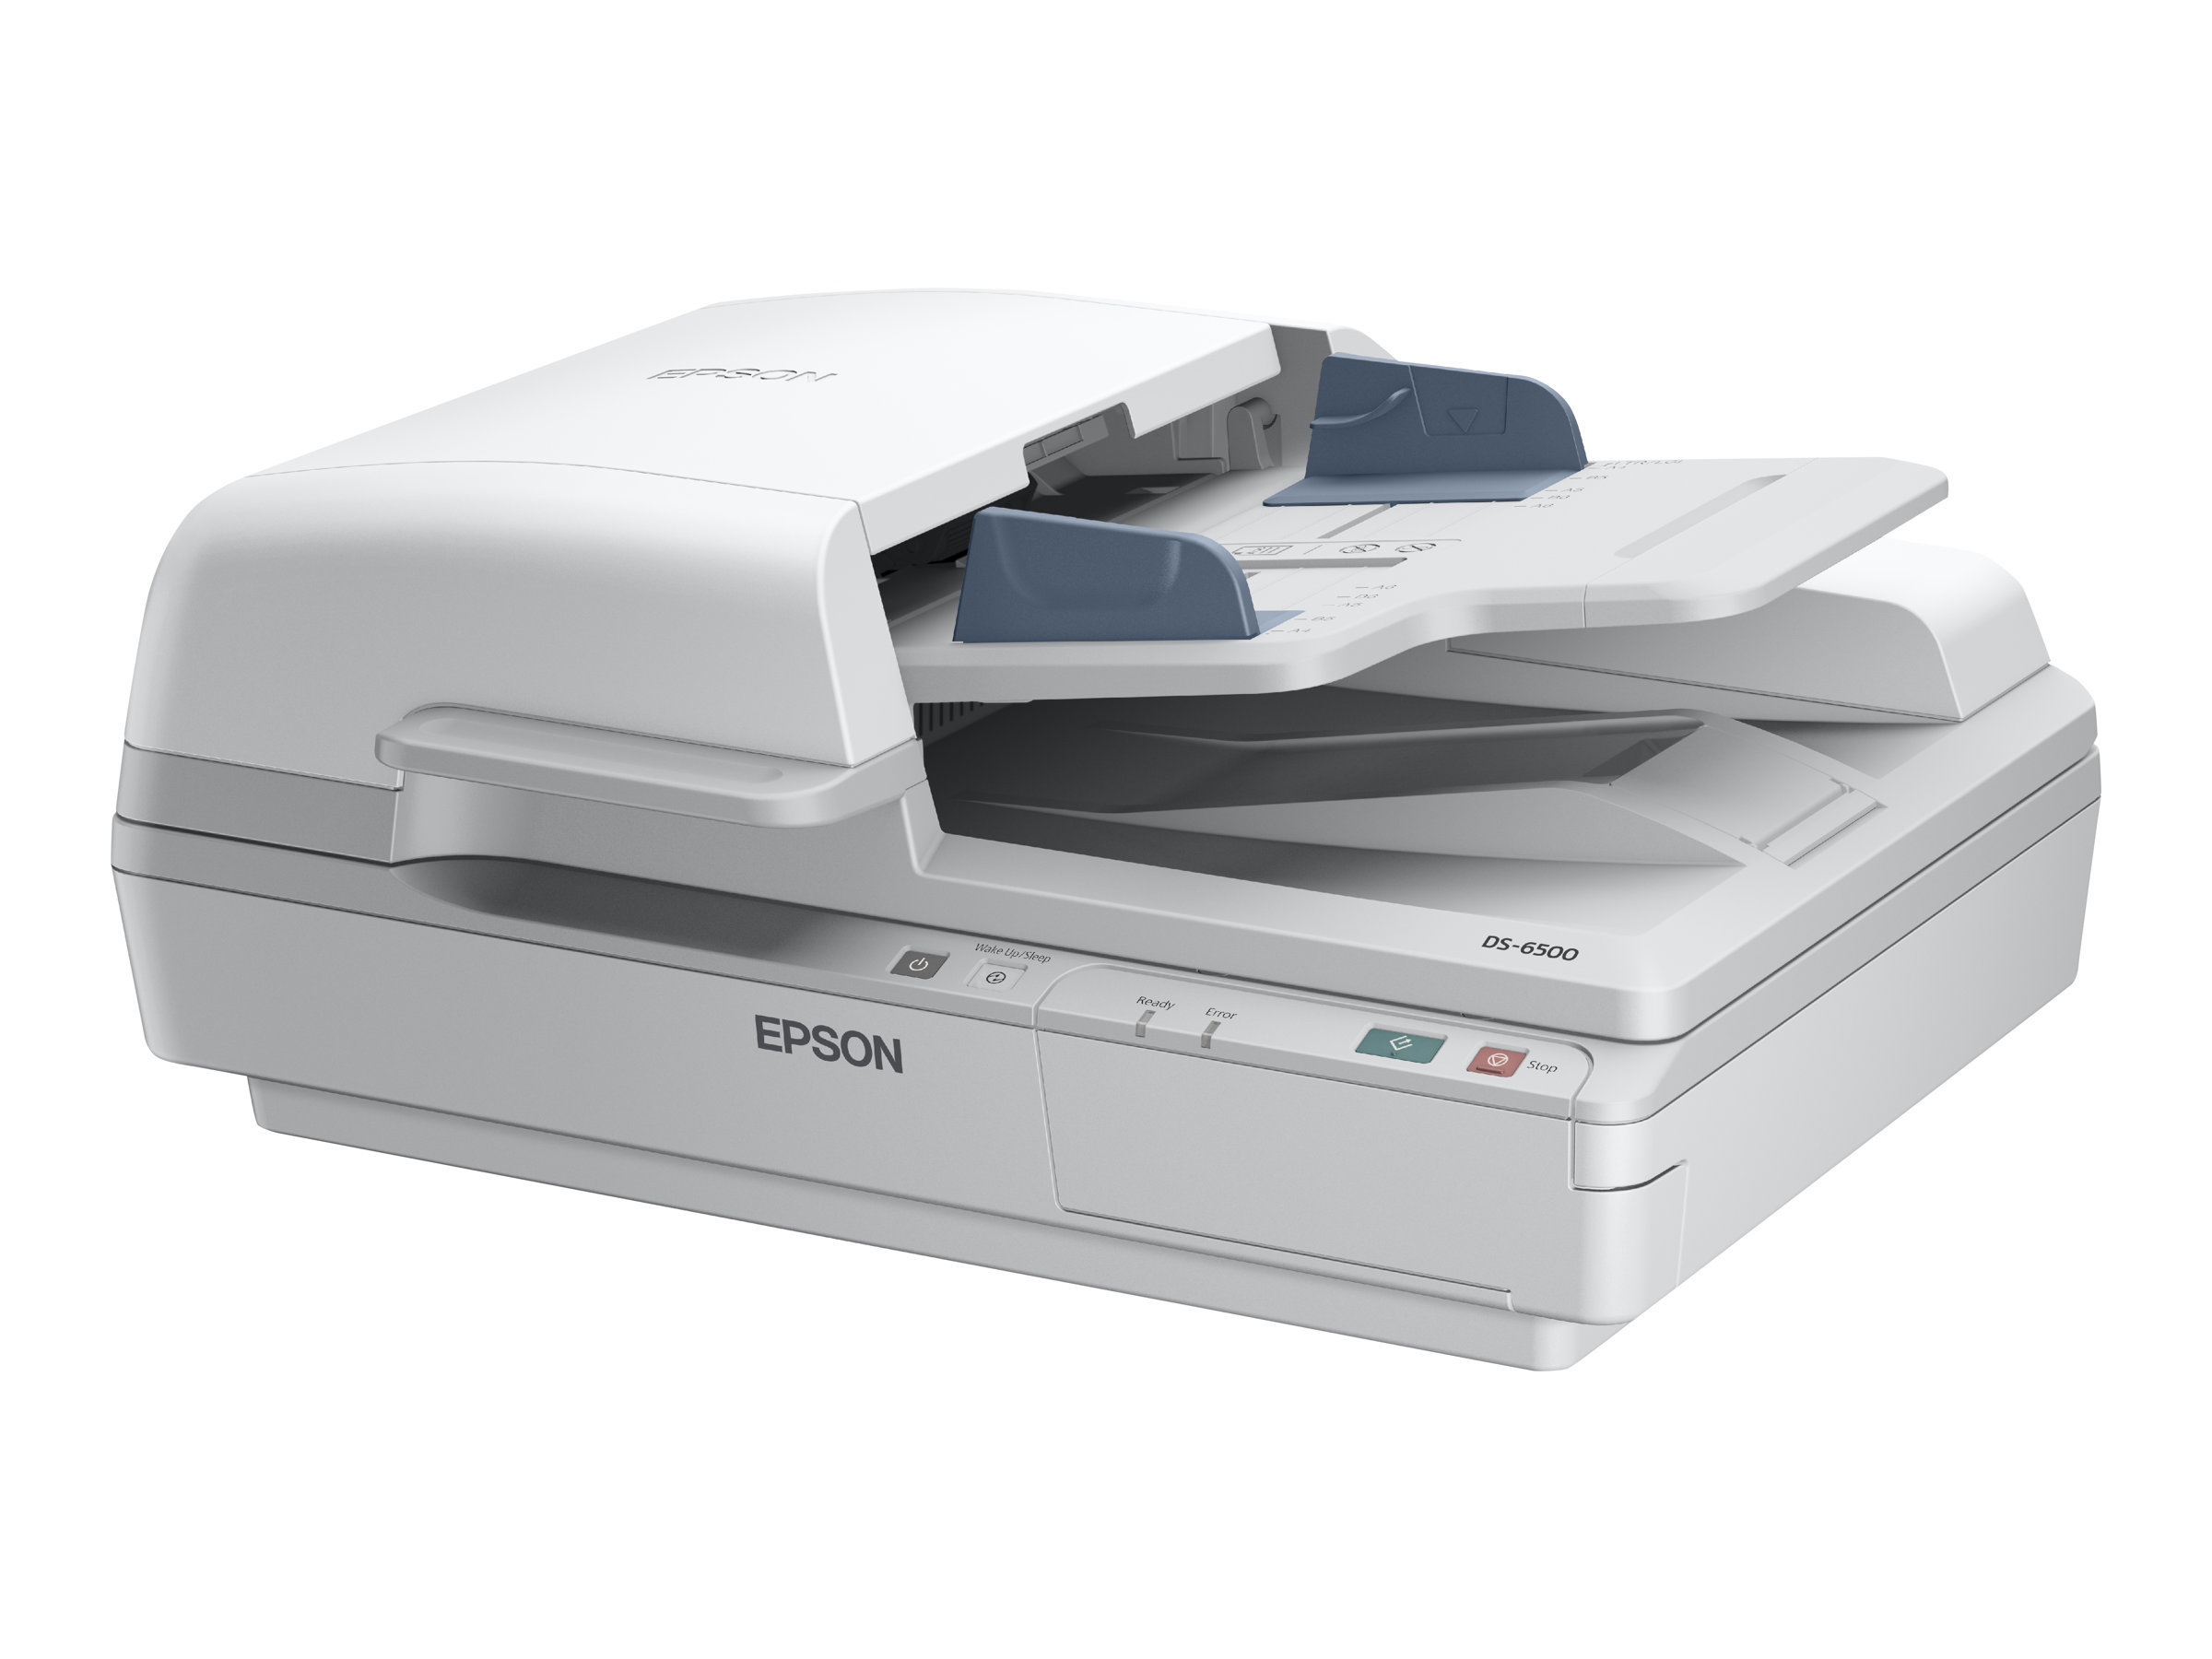 Epson WorkForce DS-7500 - scanner de documents A4 - 1200 ppp x 1200 ppp - 40ppm